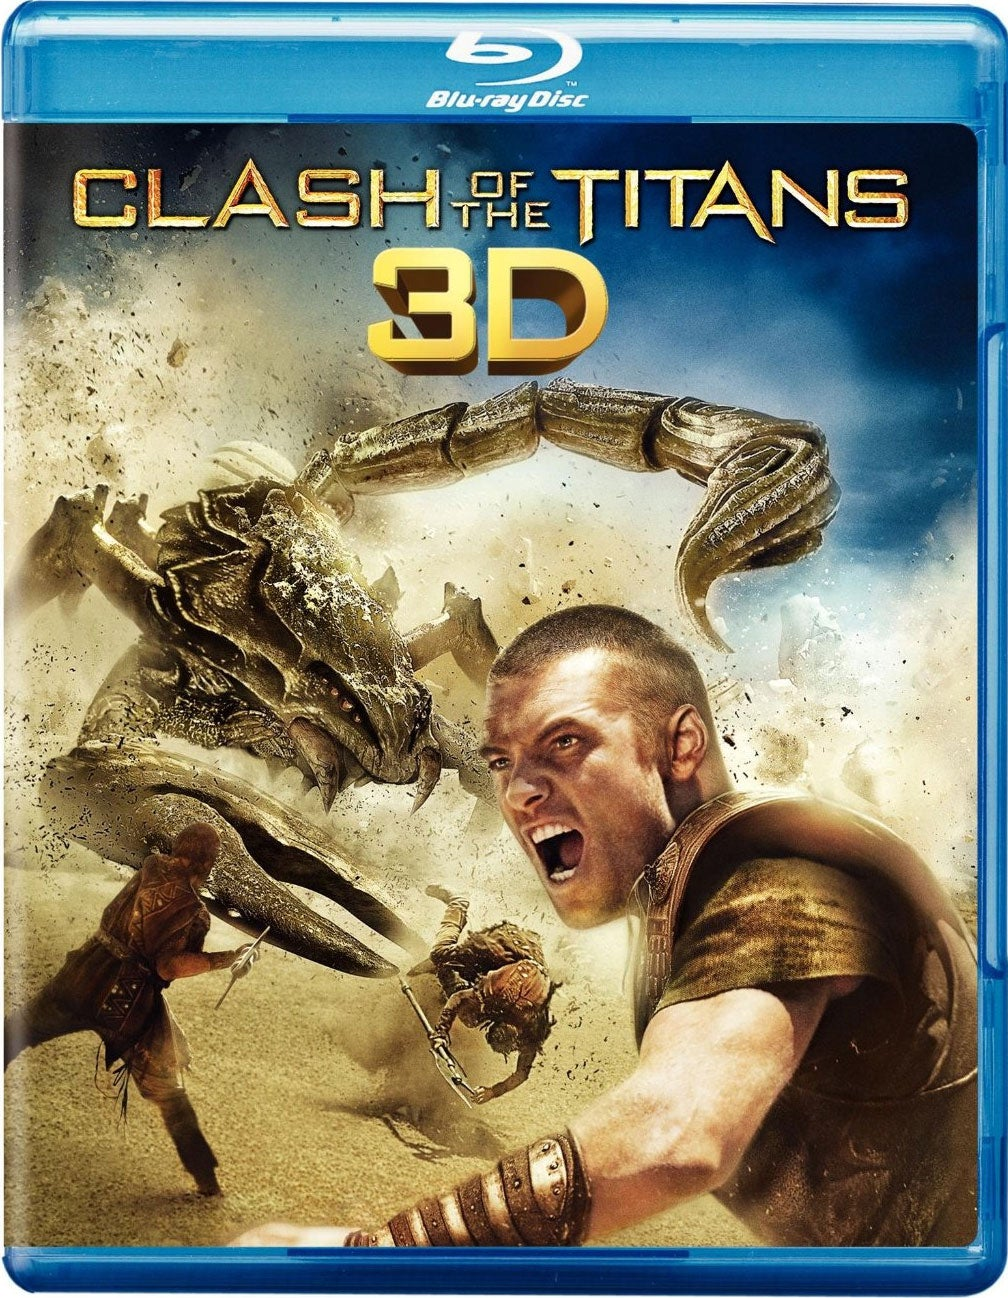 Clash of the Titans 3D (Blu-ray Disc)